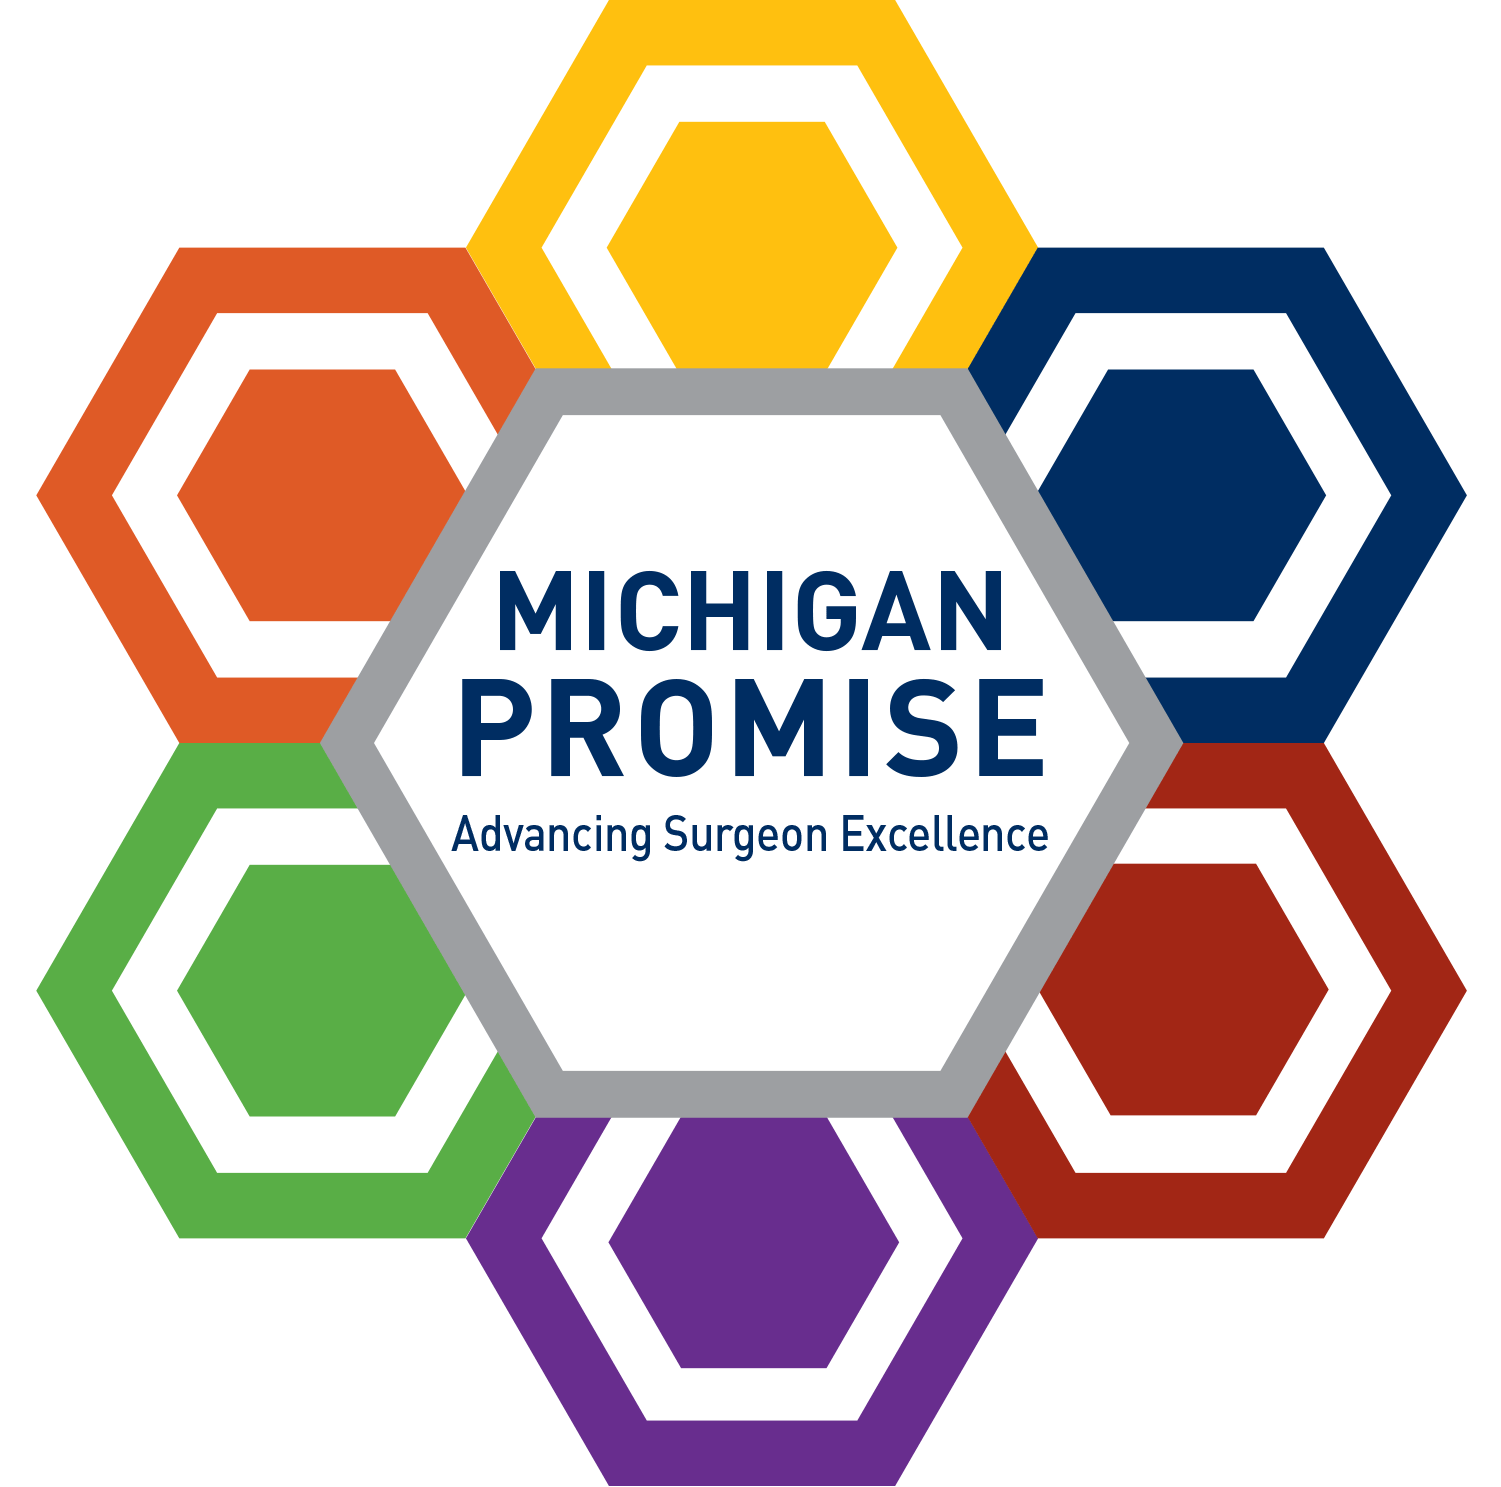 Michigan Promise: Advancing Surgeon Excellence